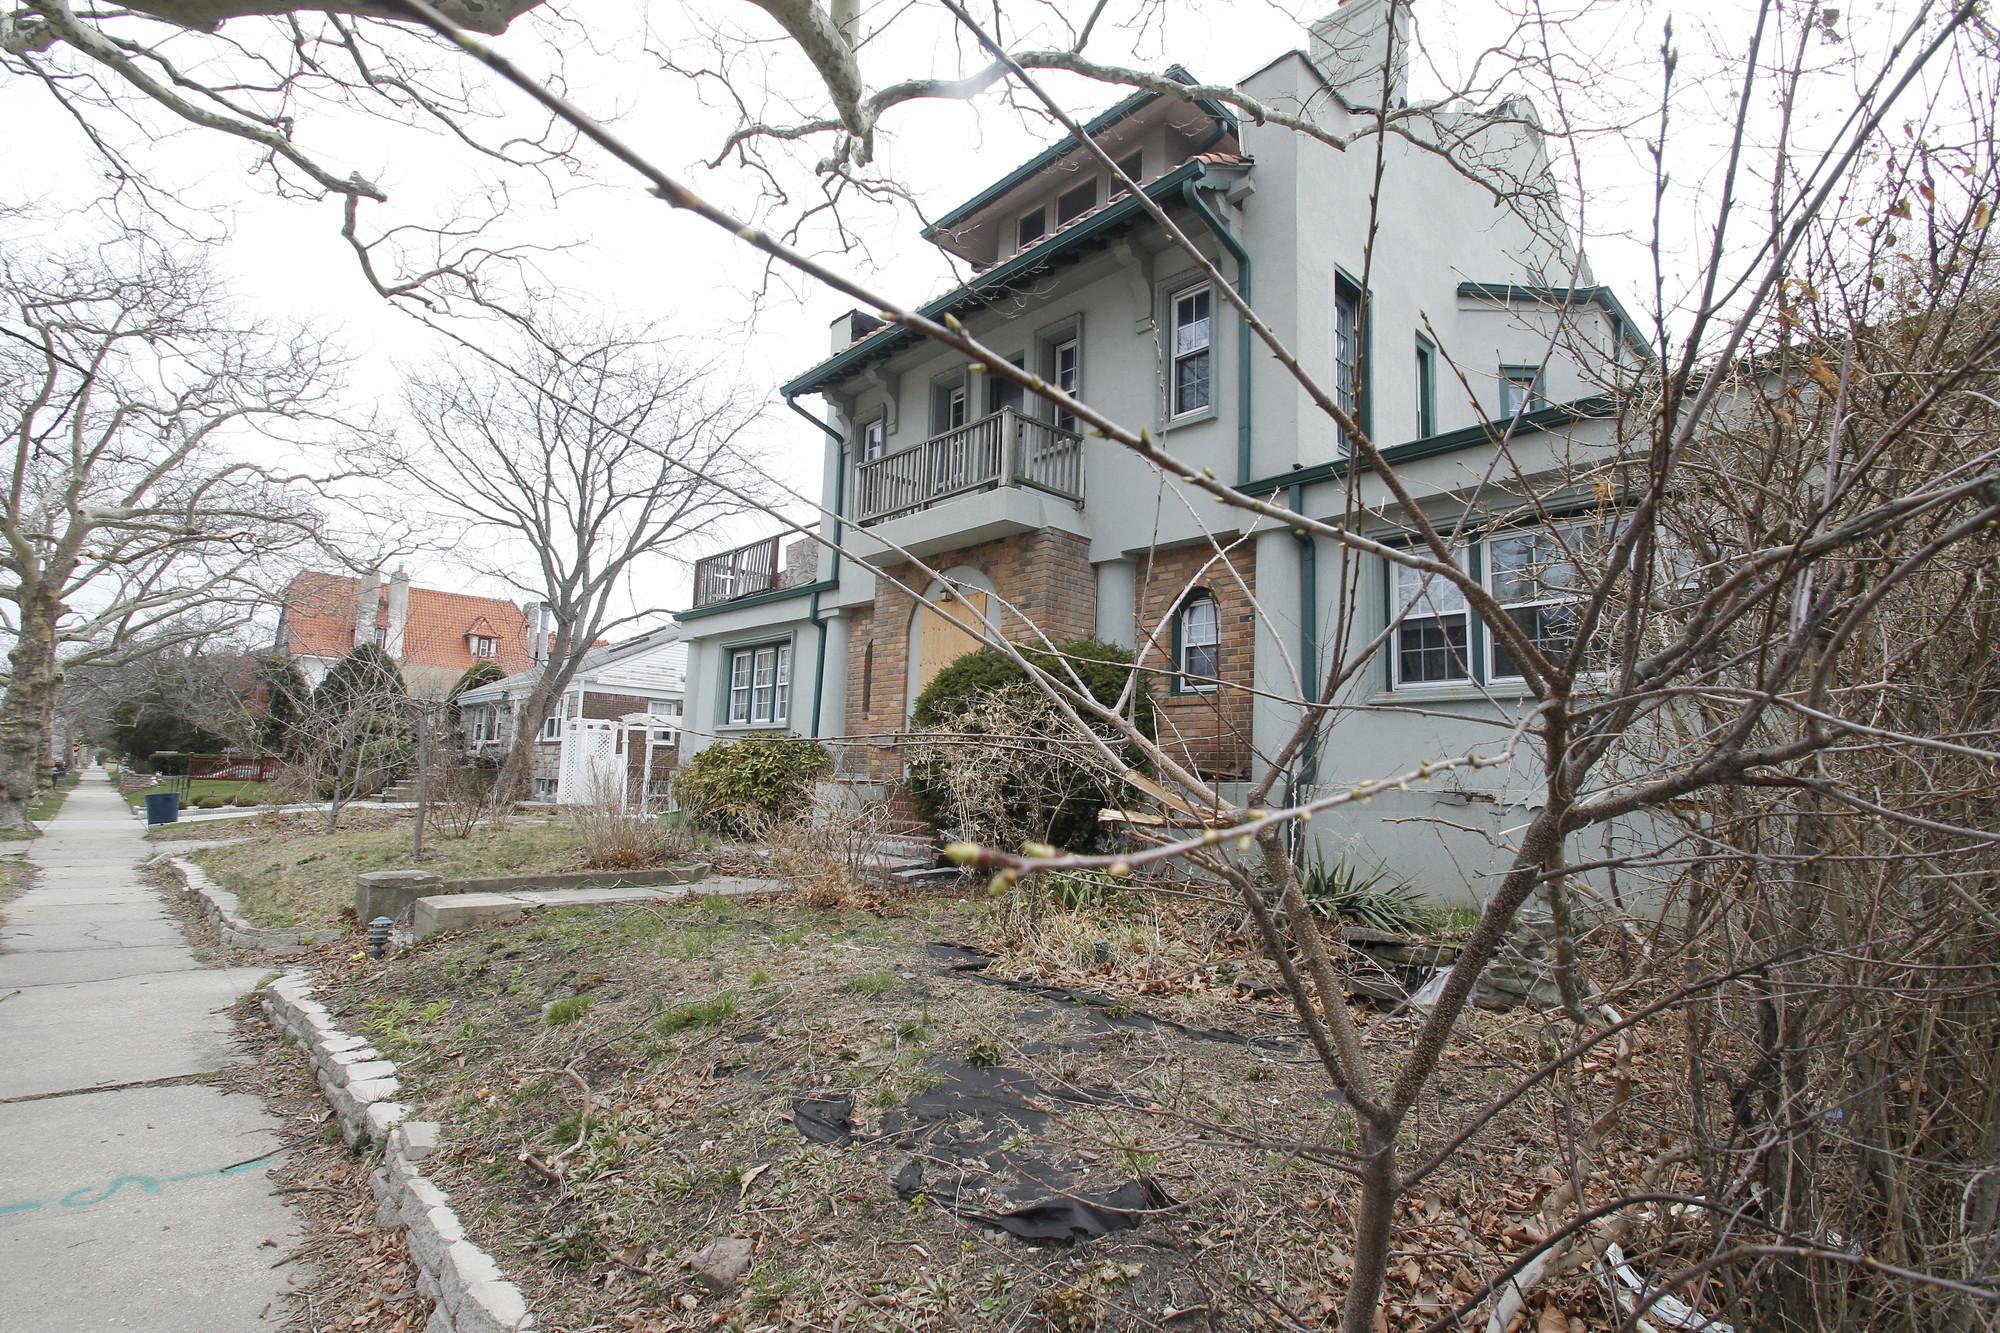 Ownership of this property has been up in the air since its elderly owner moved into a nursing home years ago and the foreclosure process stalled.